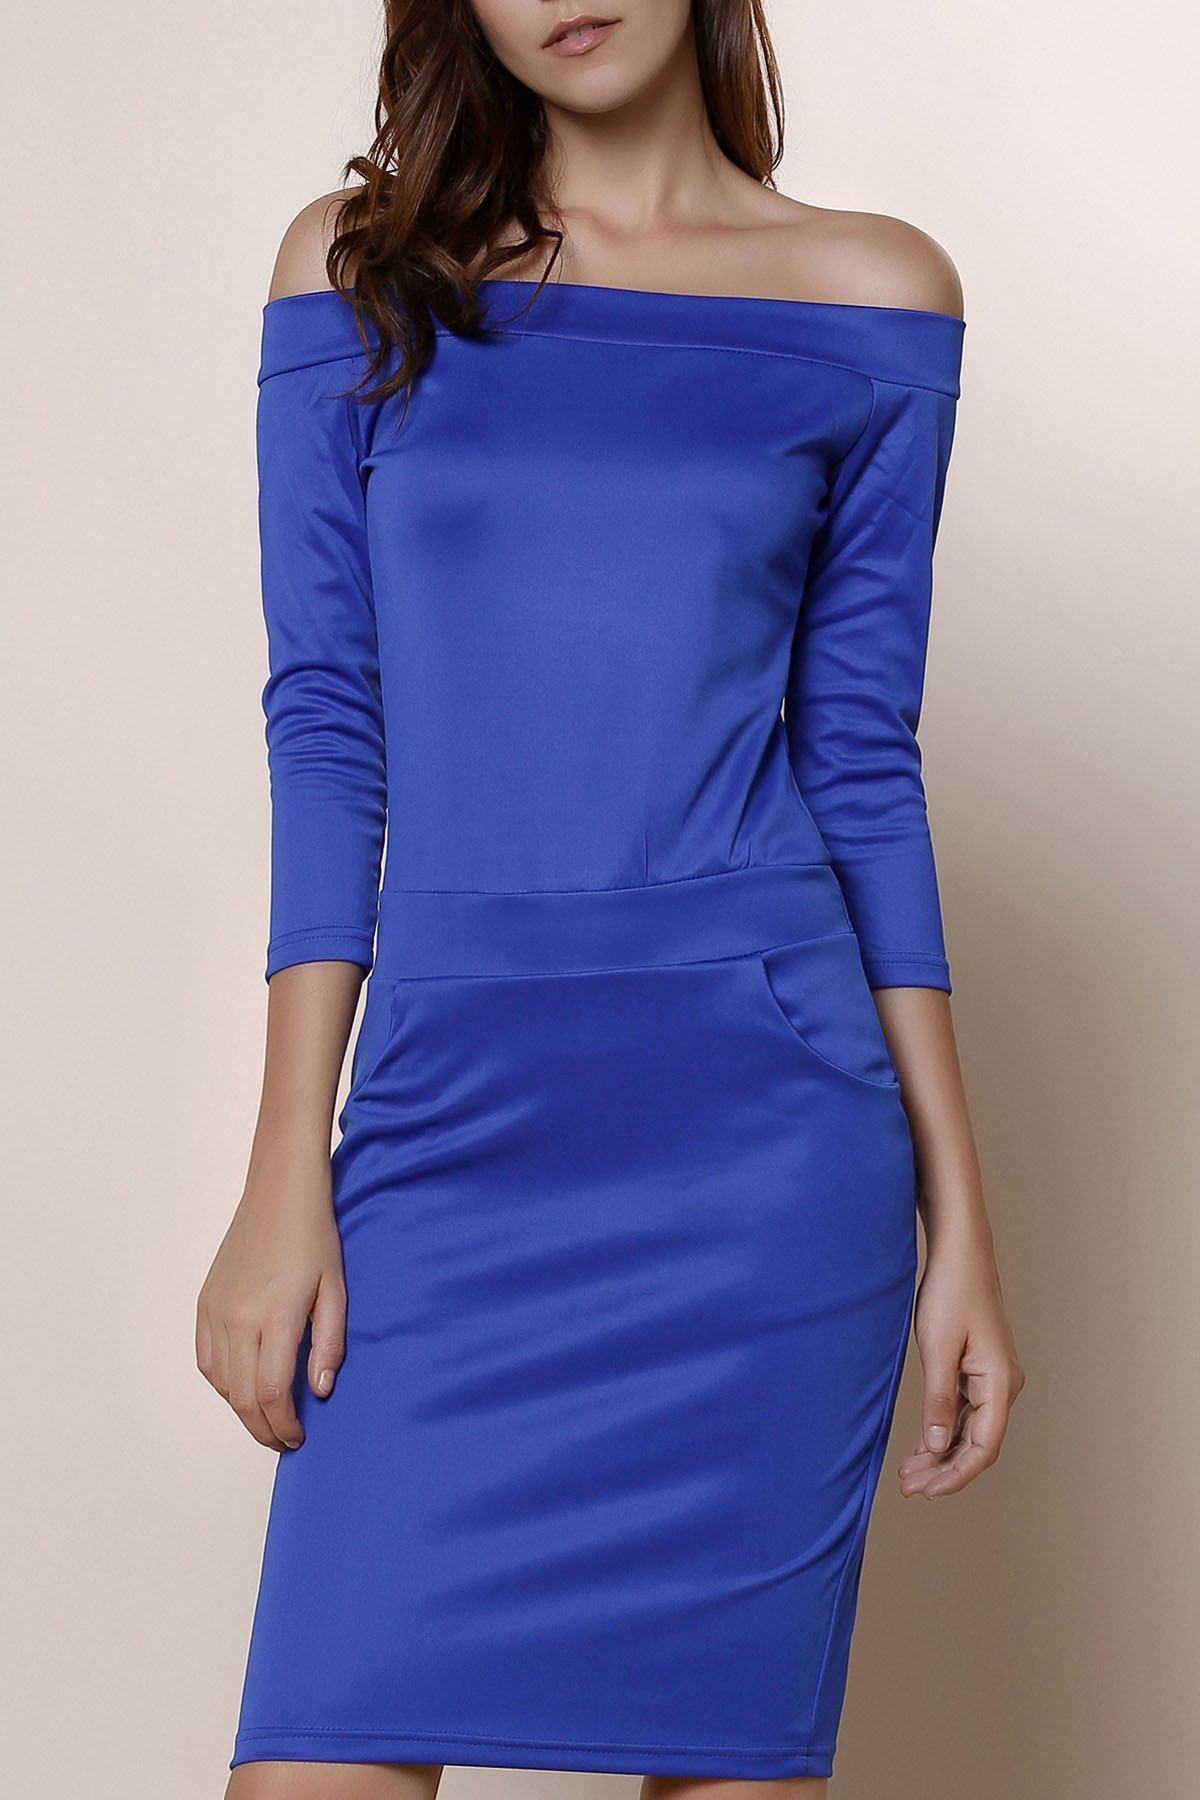 Brief Blue Off The Shoulder Long Sleeve Dress For Women - BLUE S